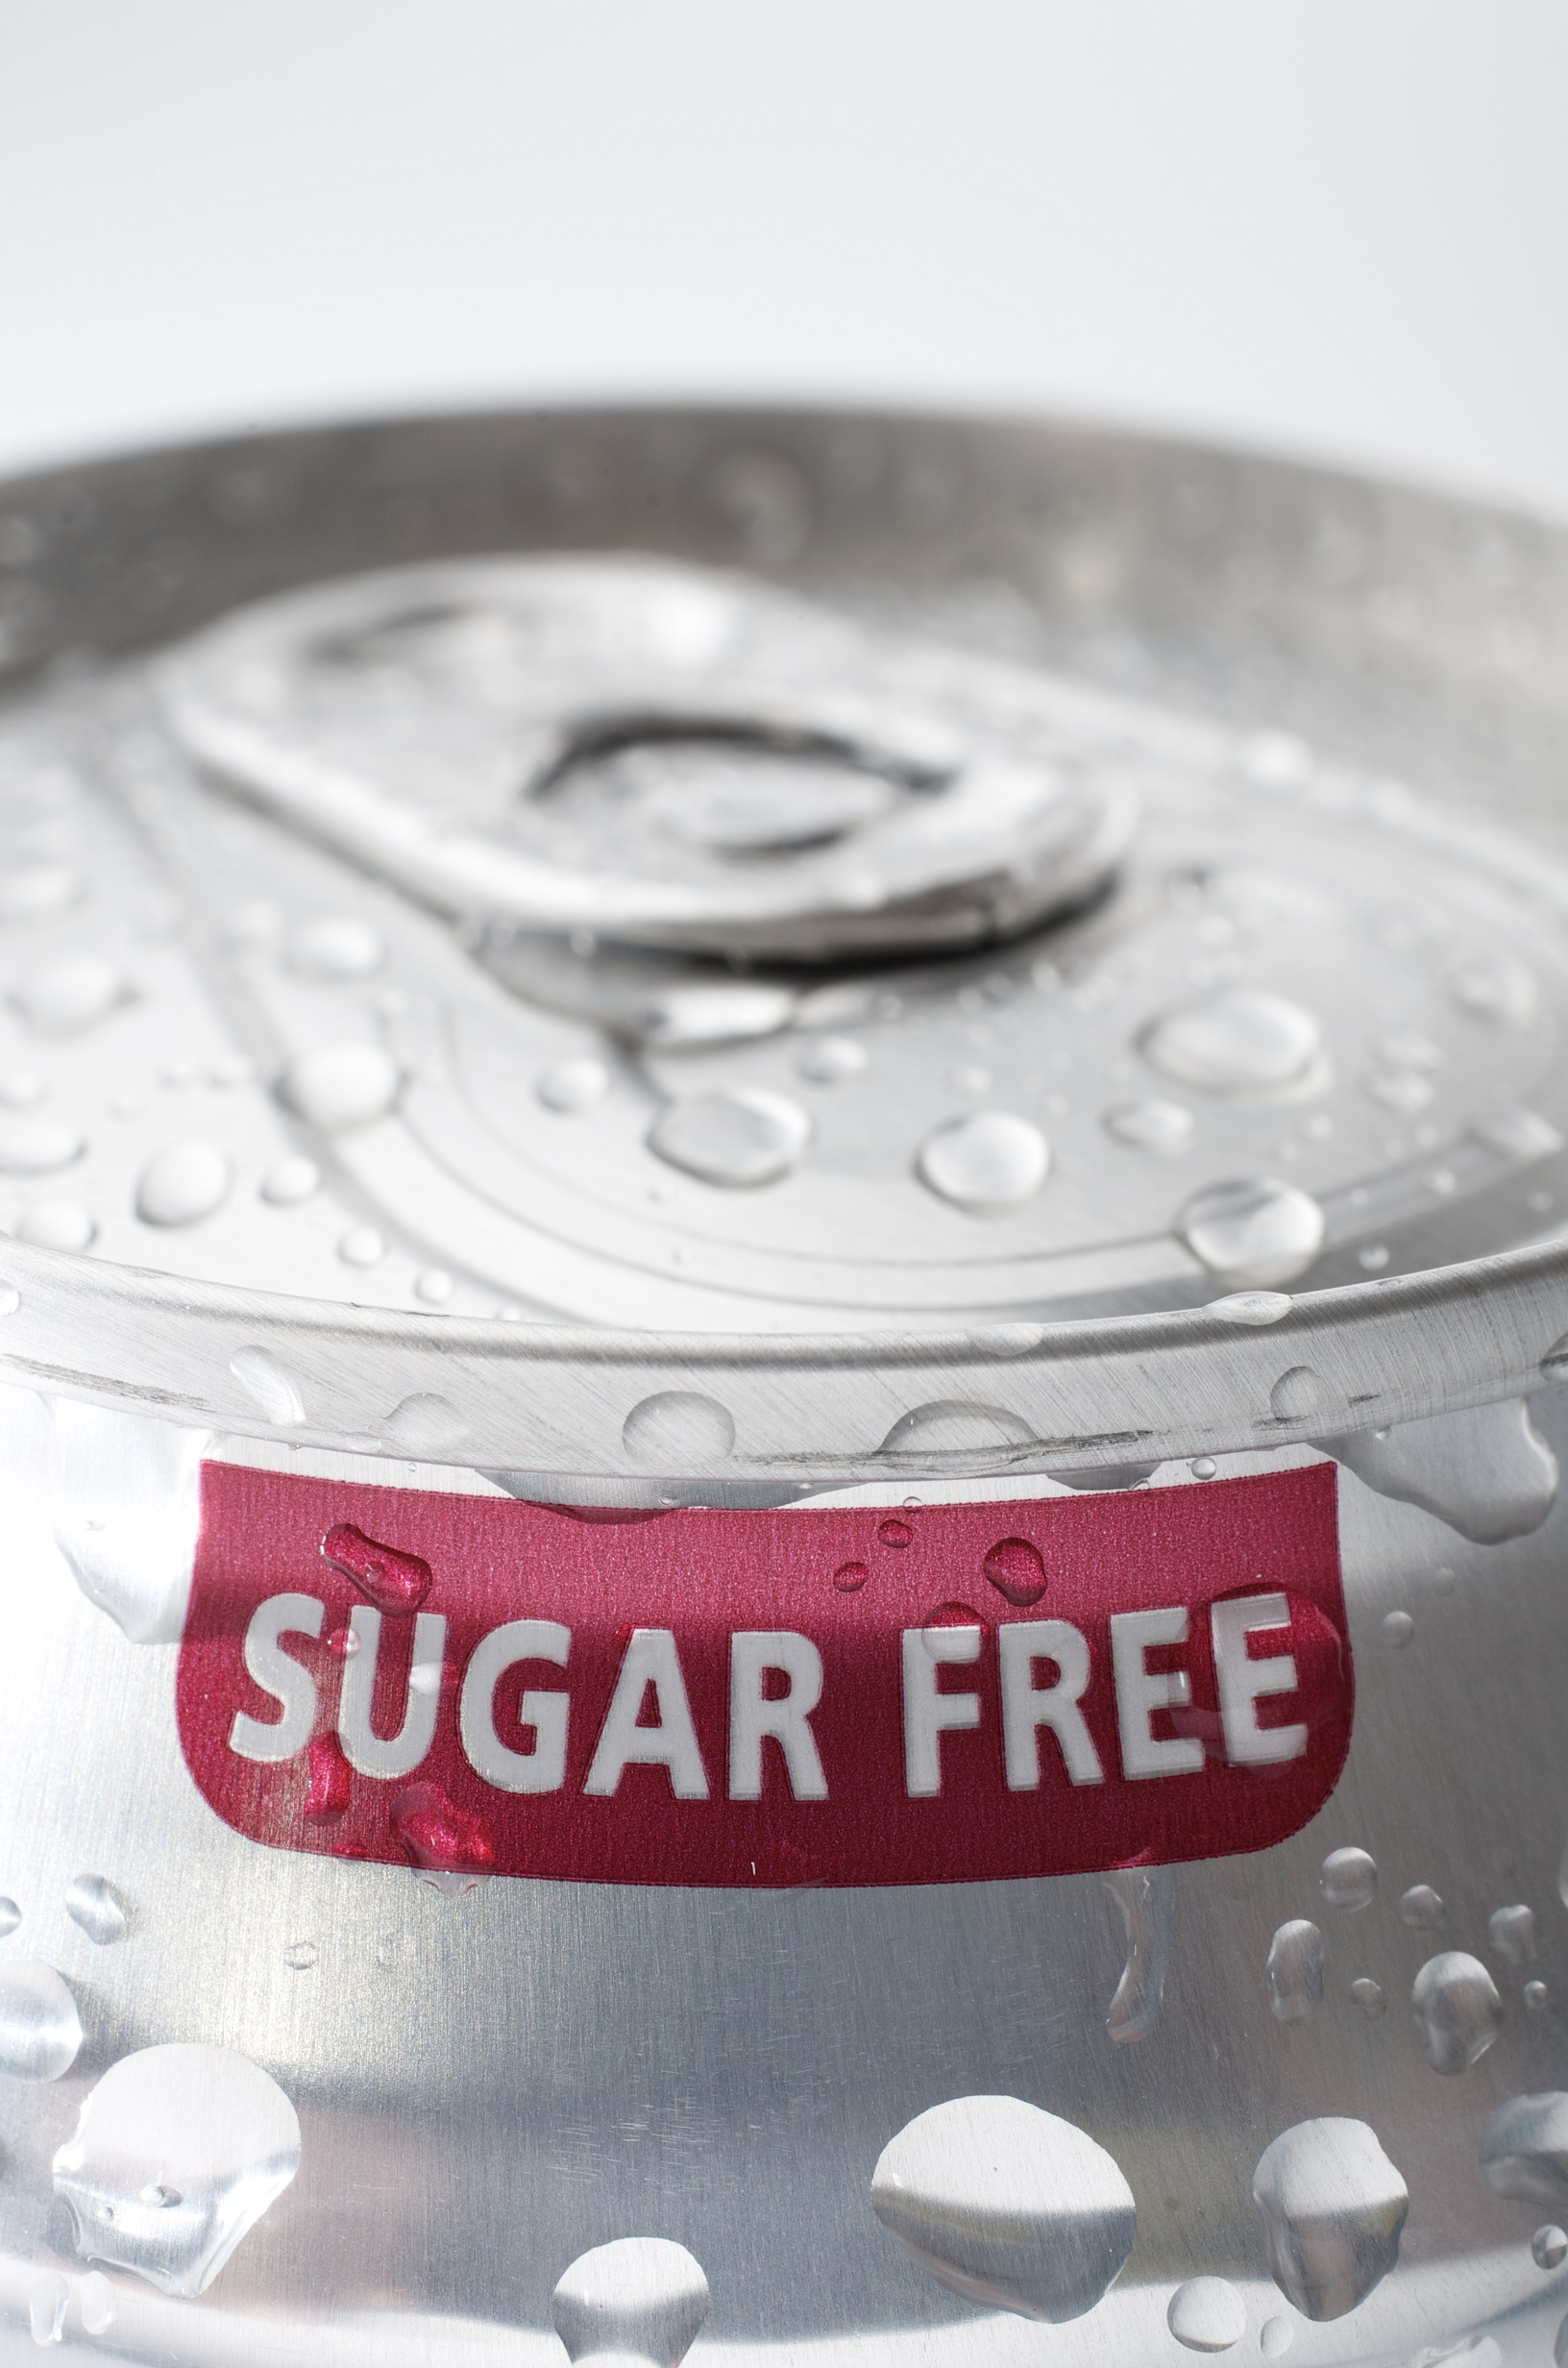 sugar free soda label